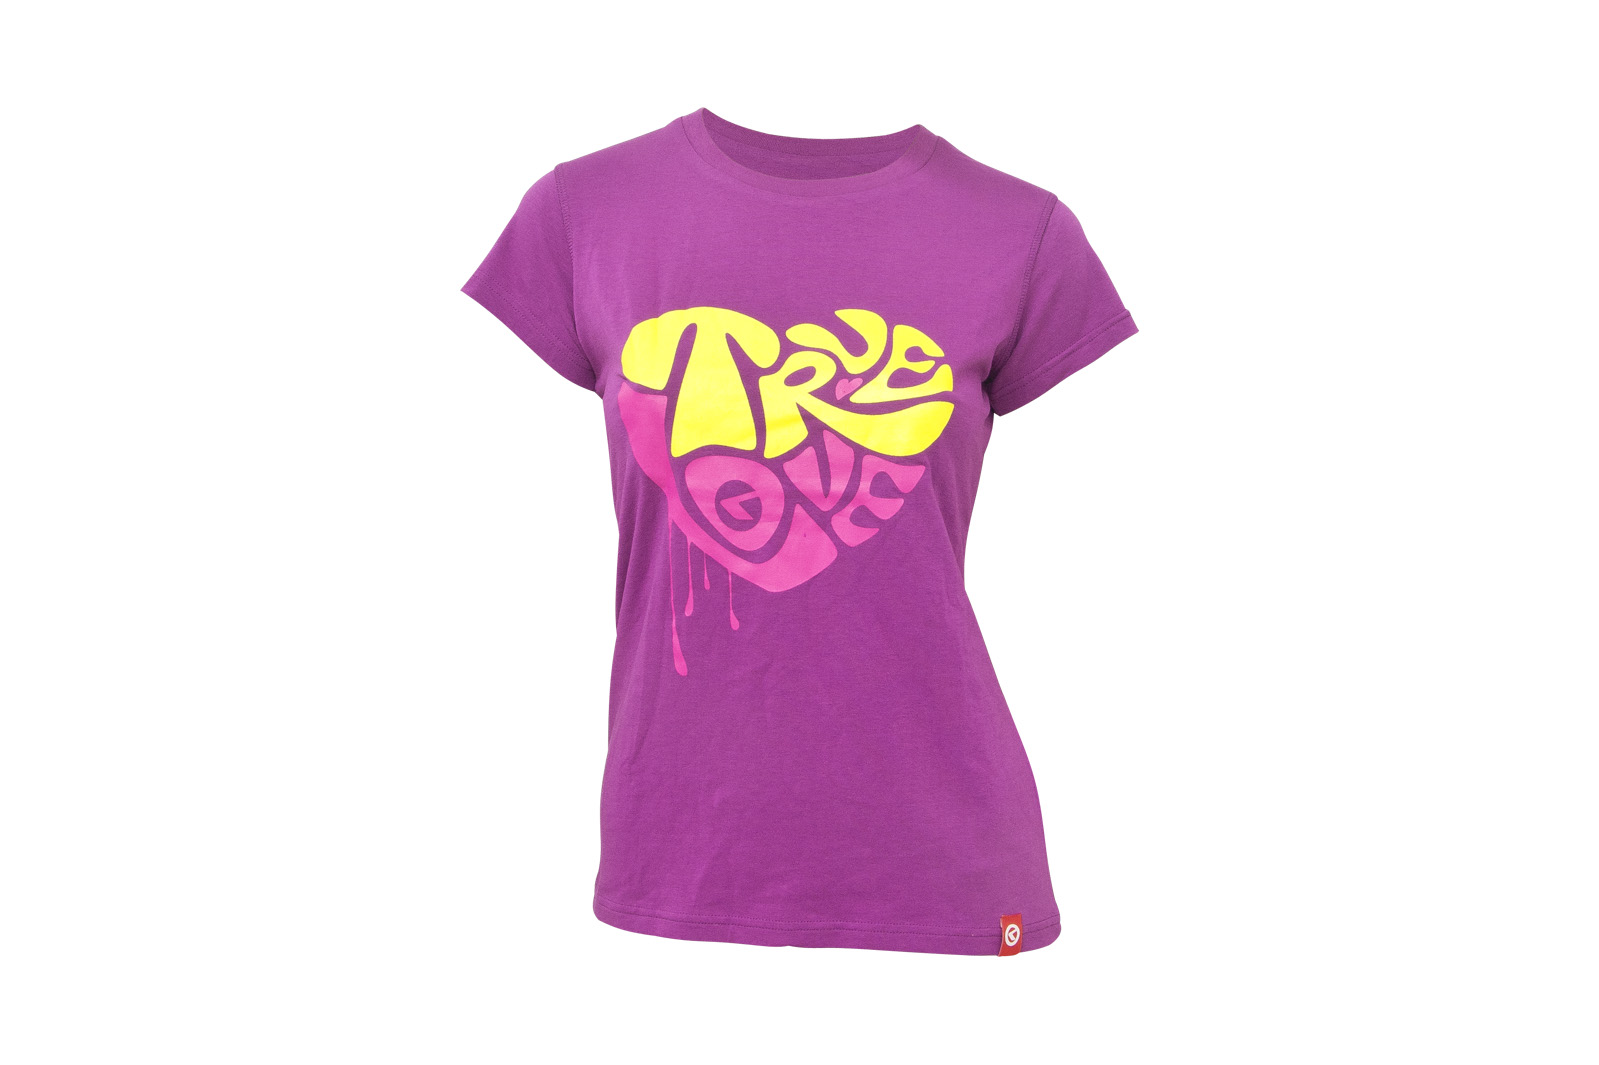 T-Shirt KELLYS WOMEN´S TRUE LOVE kurzarm Purple - M - T-Shirt KELLYS WOMEN´S TRUE LOVE kurzarm Purple - M